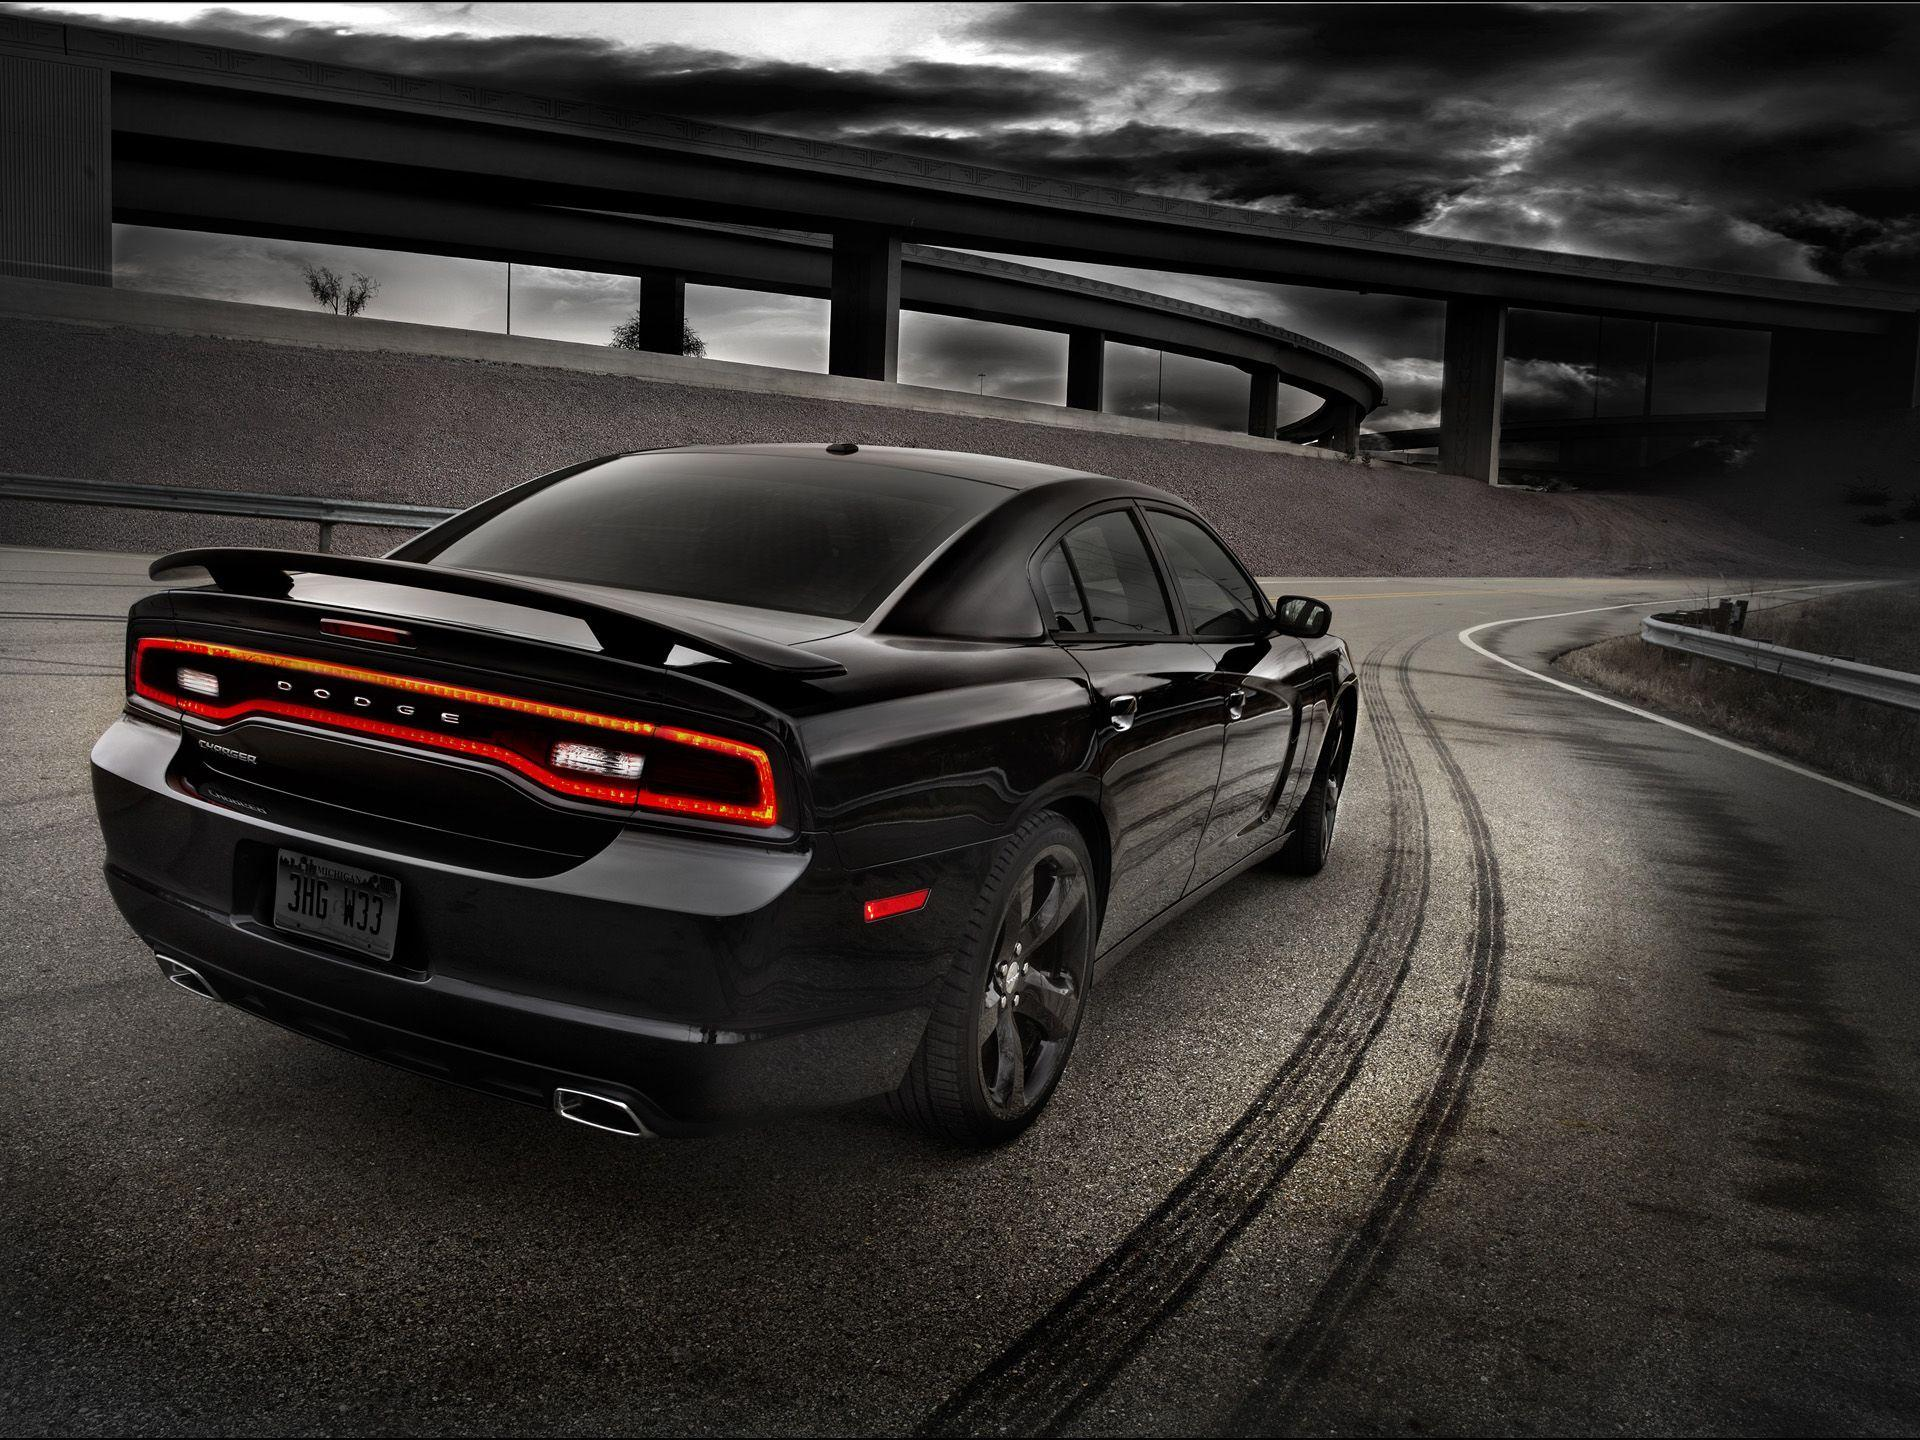 Dodge Charger Wallpapers, Wilfredo Munsell, P.9999 for mobile and